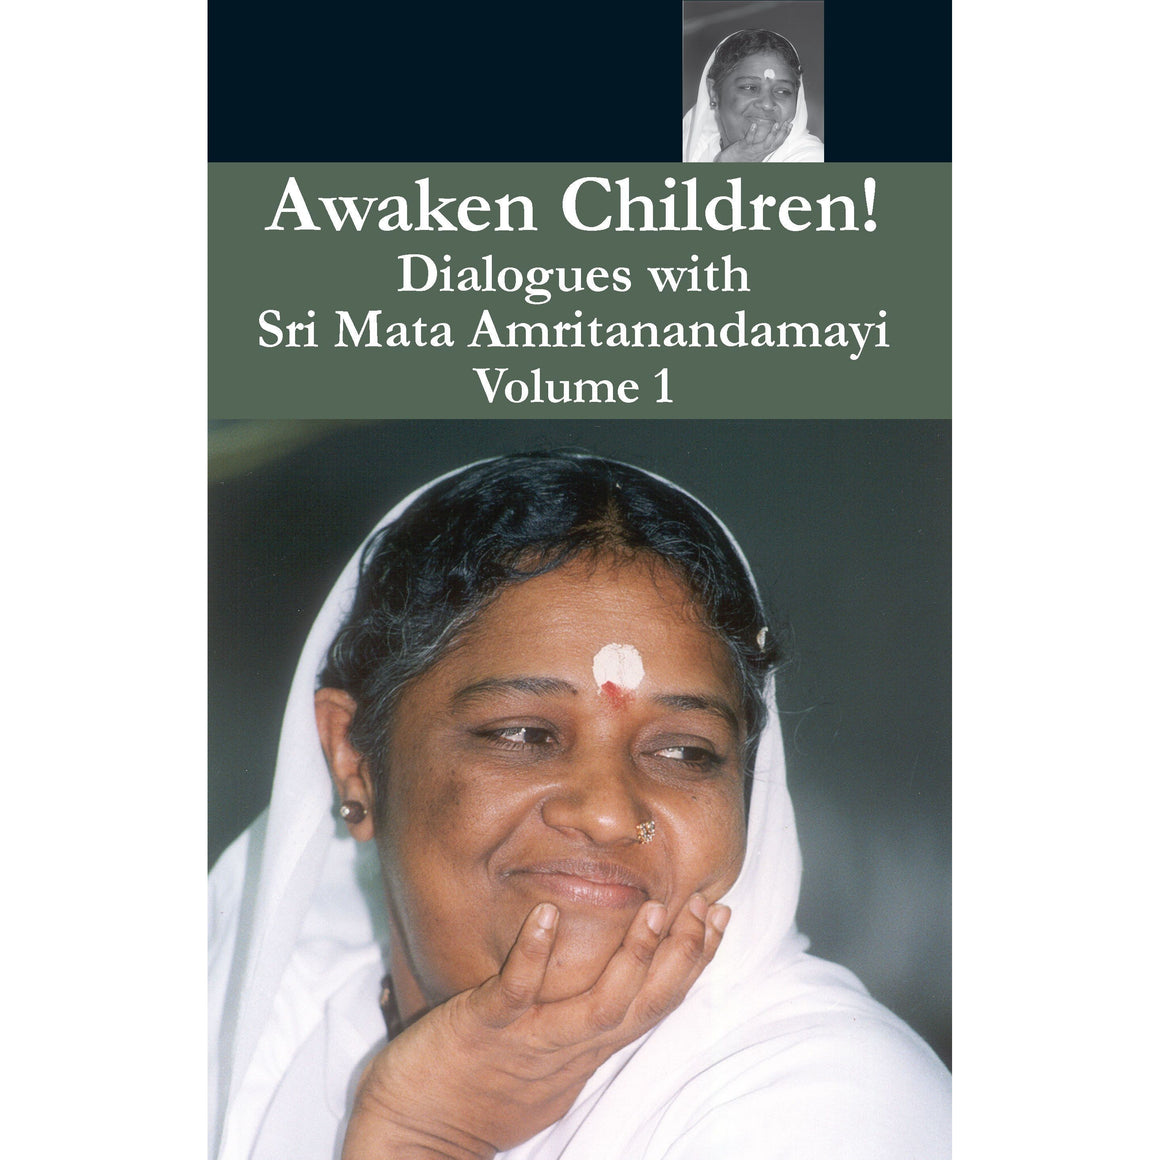 Awaken Children!, Vol. 01